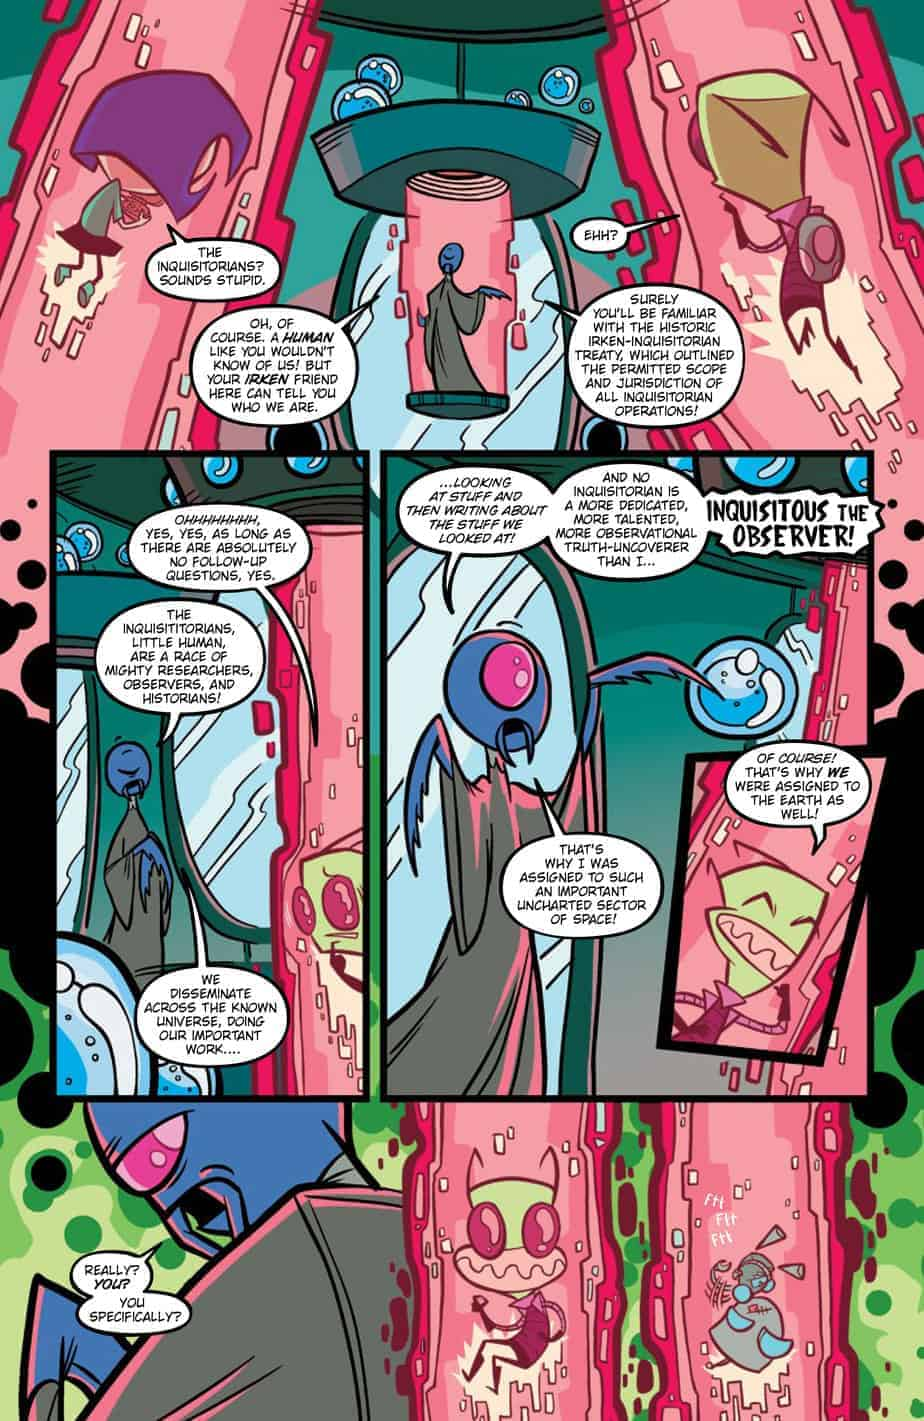 Preview-Pages-from-INVADERZIM-#39-REFERENCE-4